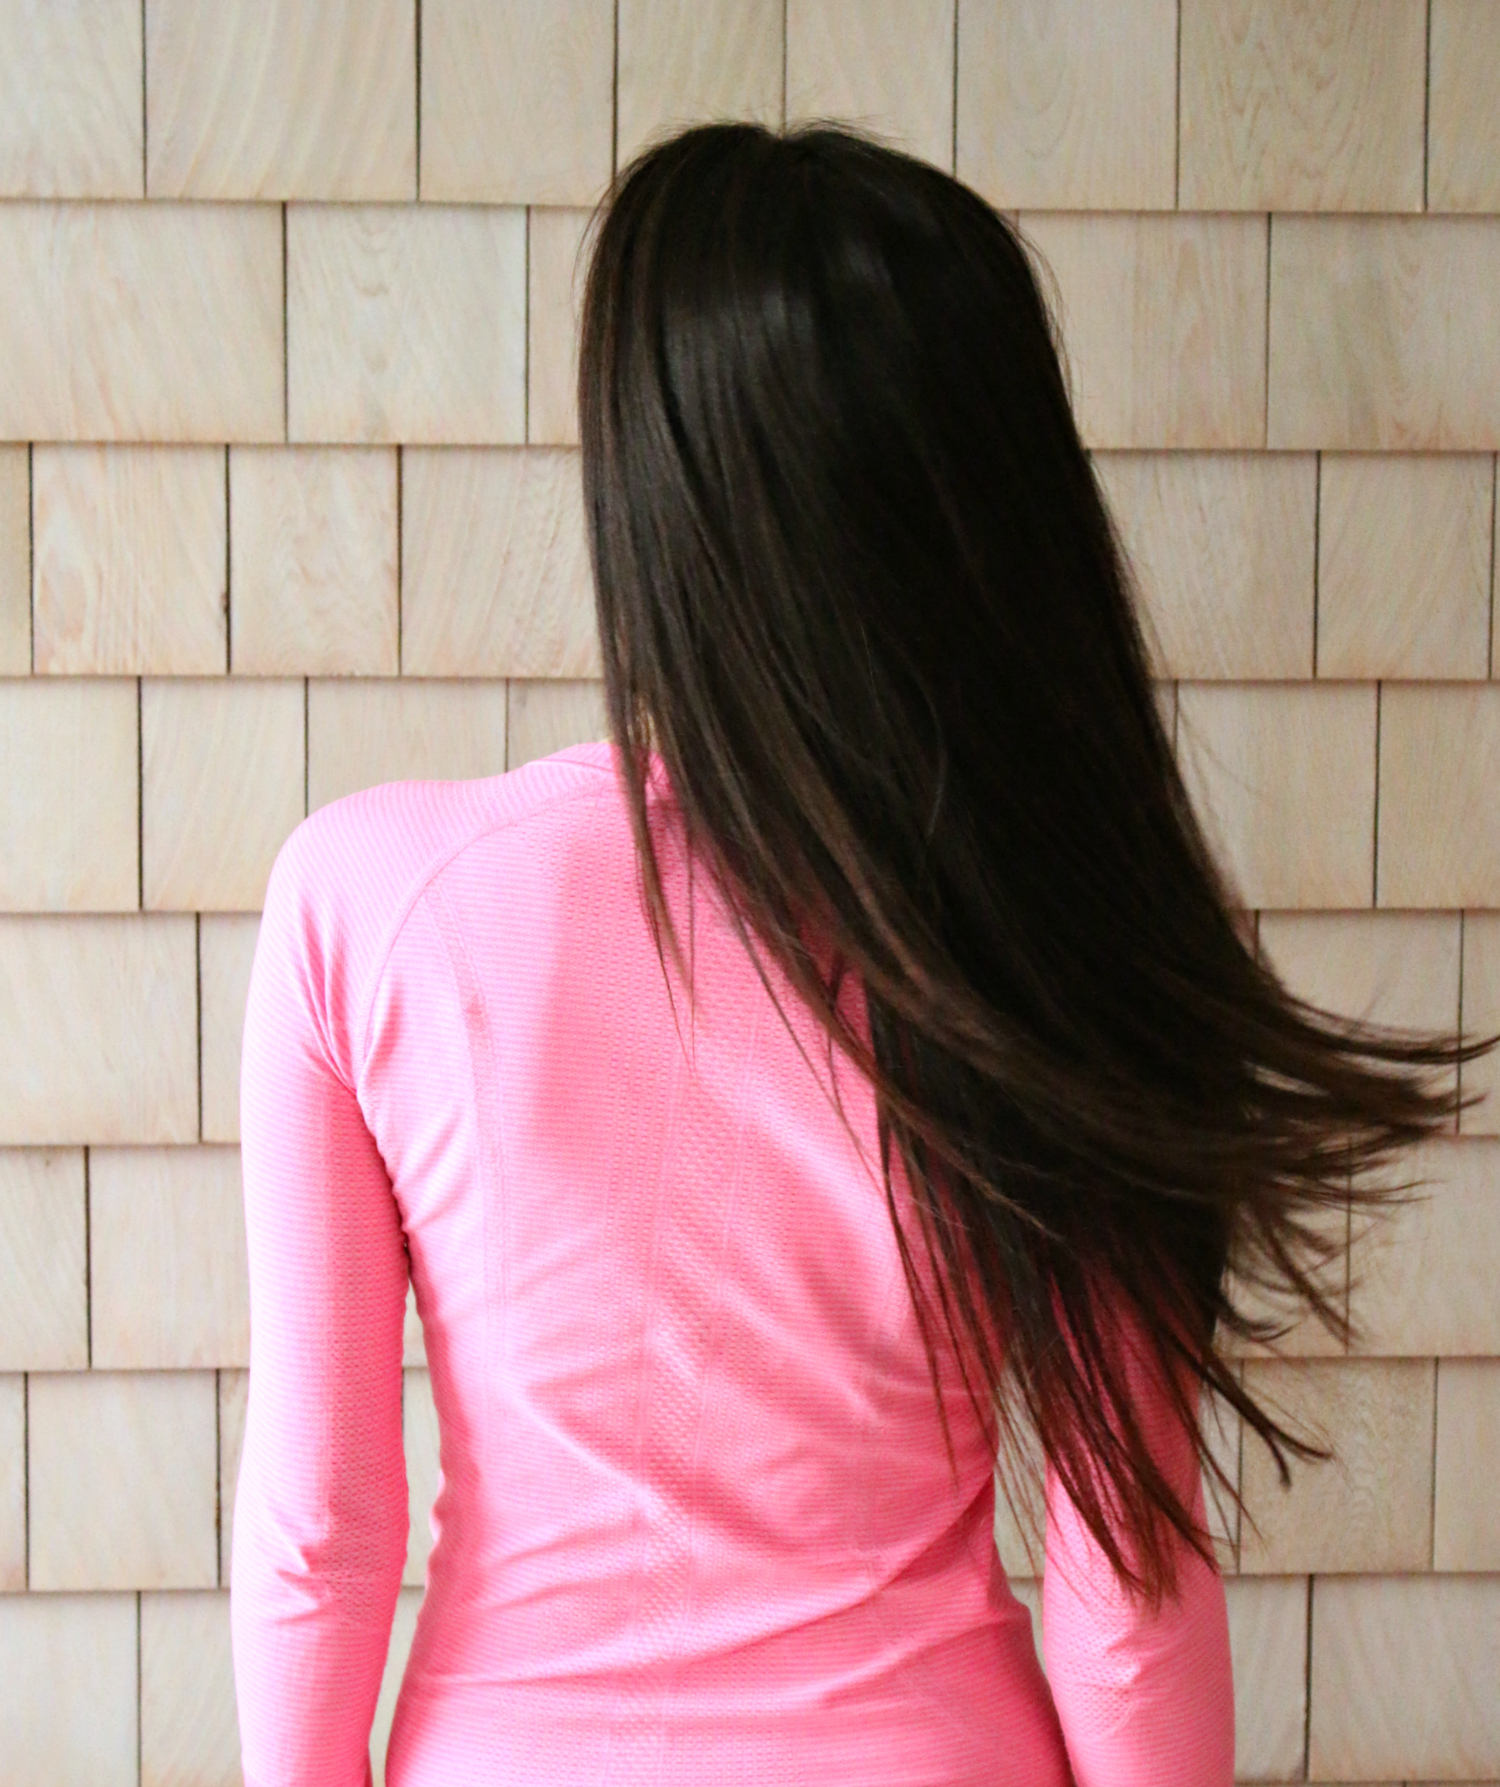 The long hair care routine for mitigating damage from styling with heat